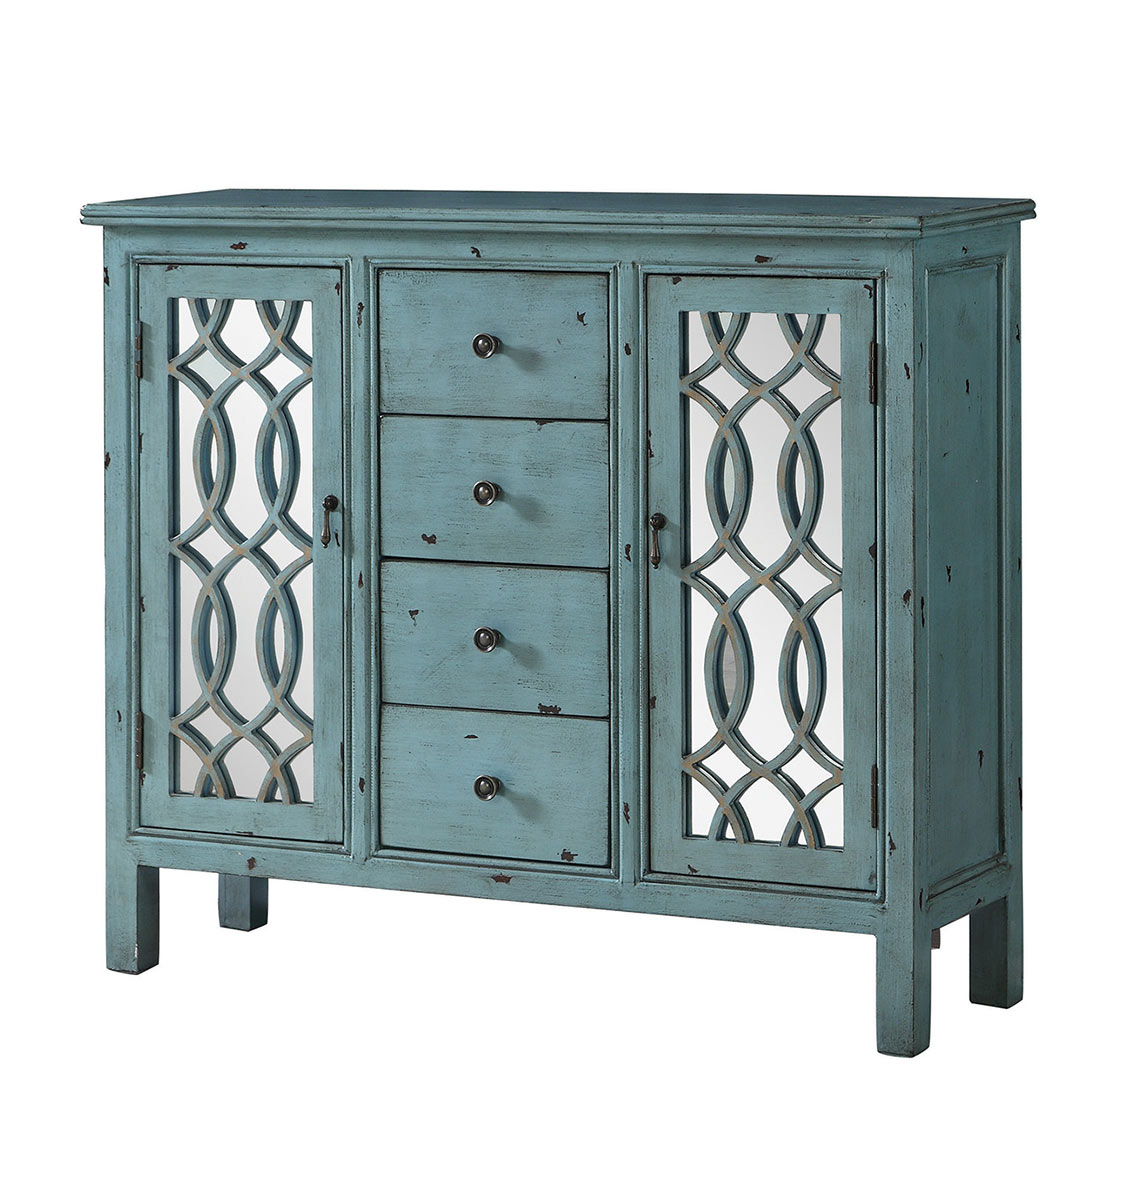 Coaster 950736 Accent Cabinet - Antique Blue